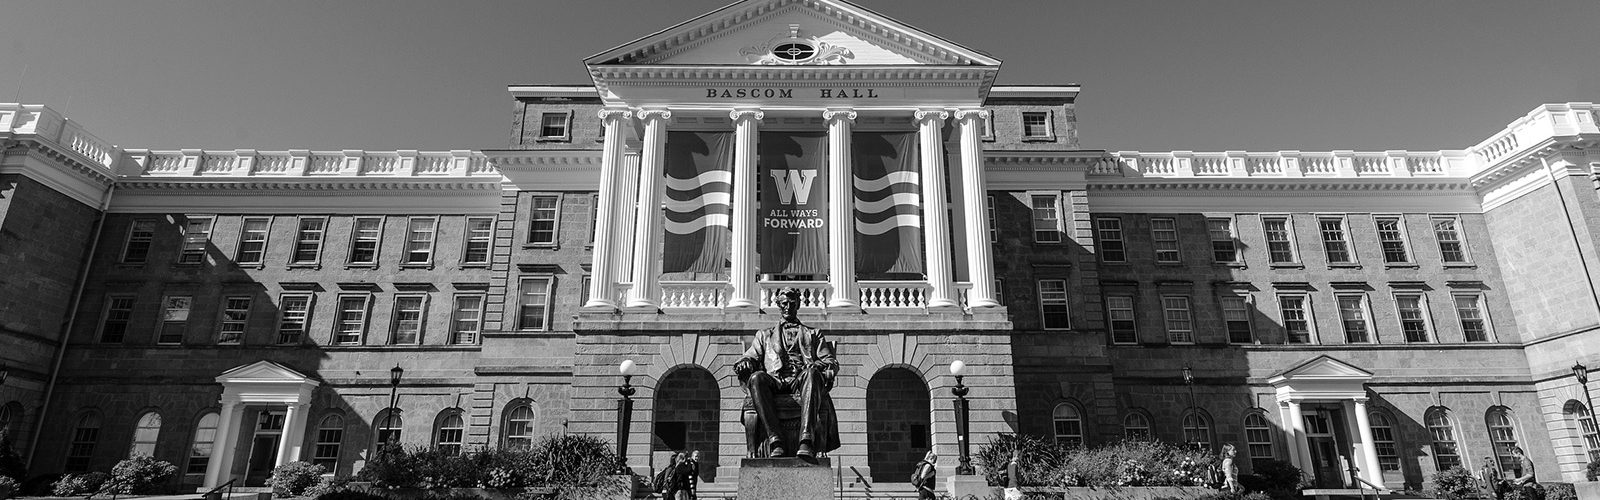 "Red and white banners featuring the iconic W and the phrase ""All Ways Forward"" adorn the exterior of Bascom Hall on a fall day."